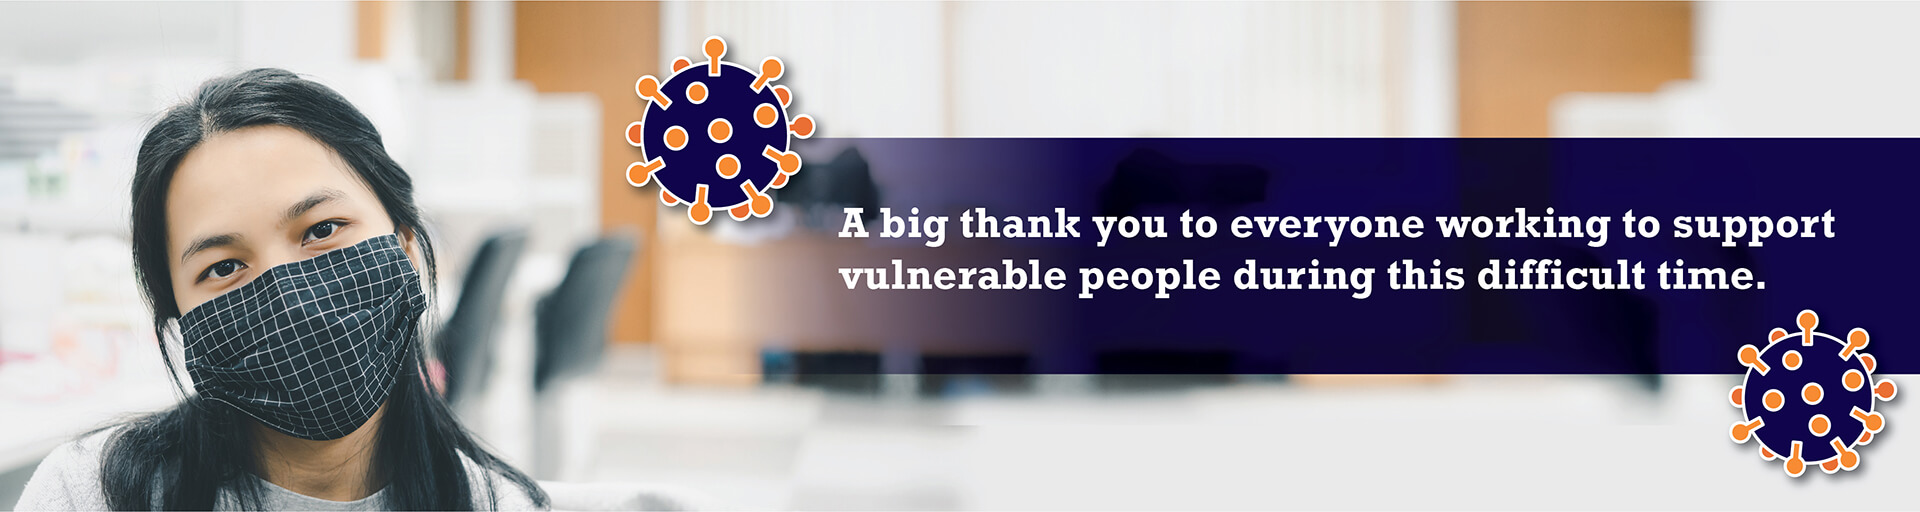 A big thank you to everyone working to support vulnerable people during this difficult time.